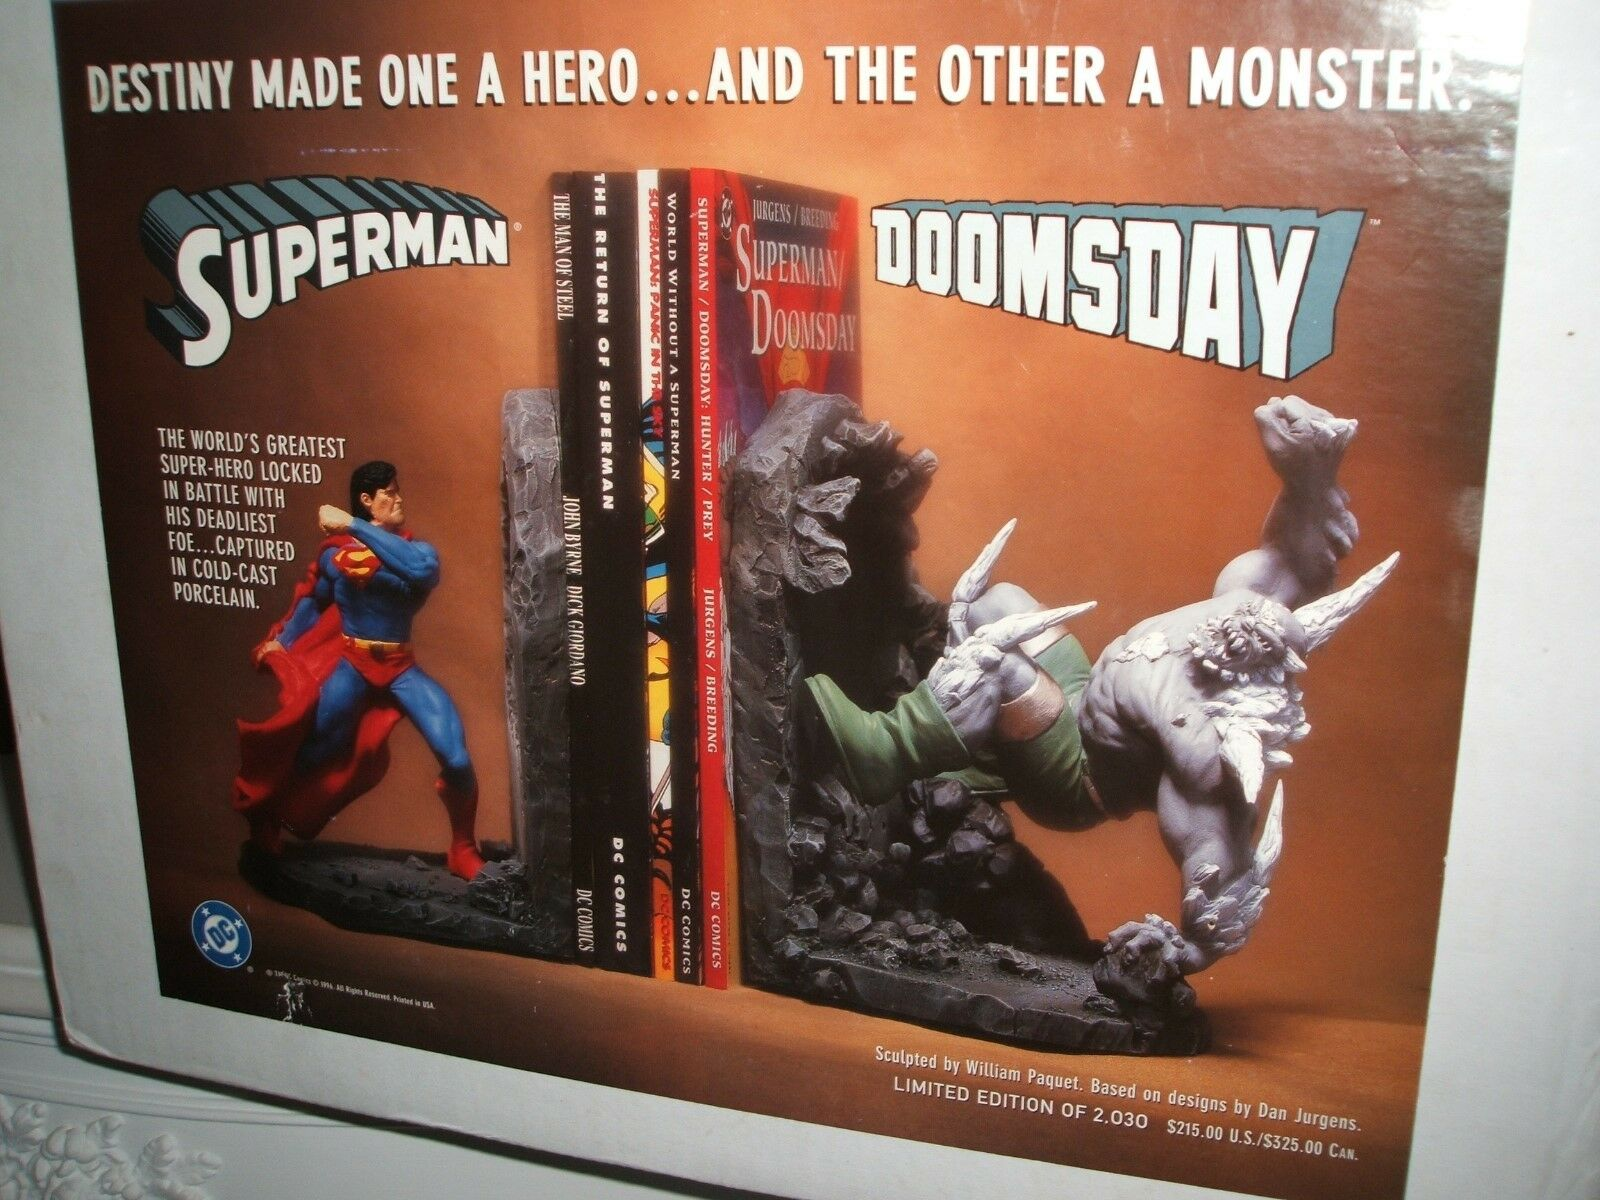 DC COMICS SUPERMAN DOOMSDAY BOOK ENDS NEW IN BOX LTD ED OF 2030 RARE